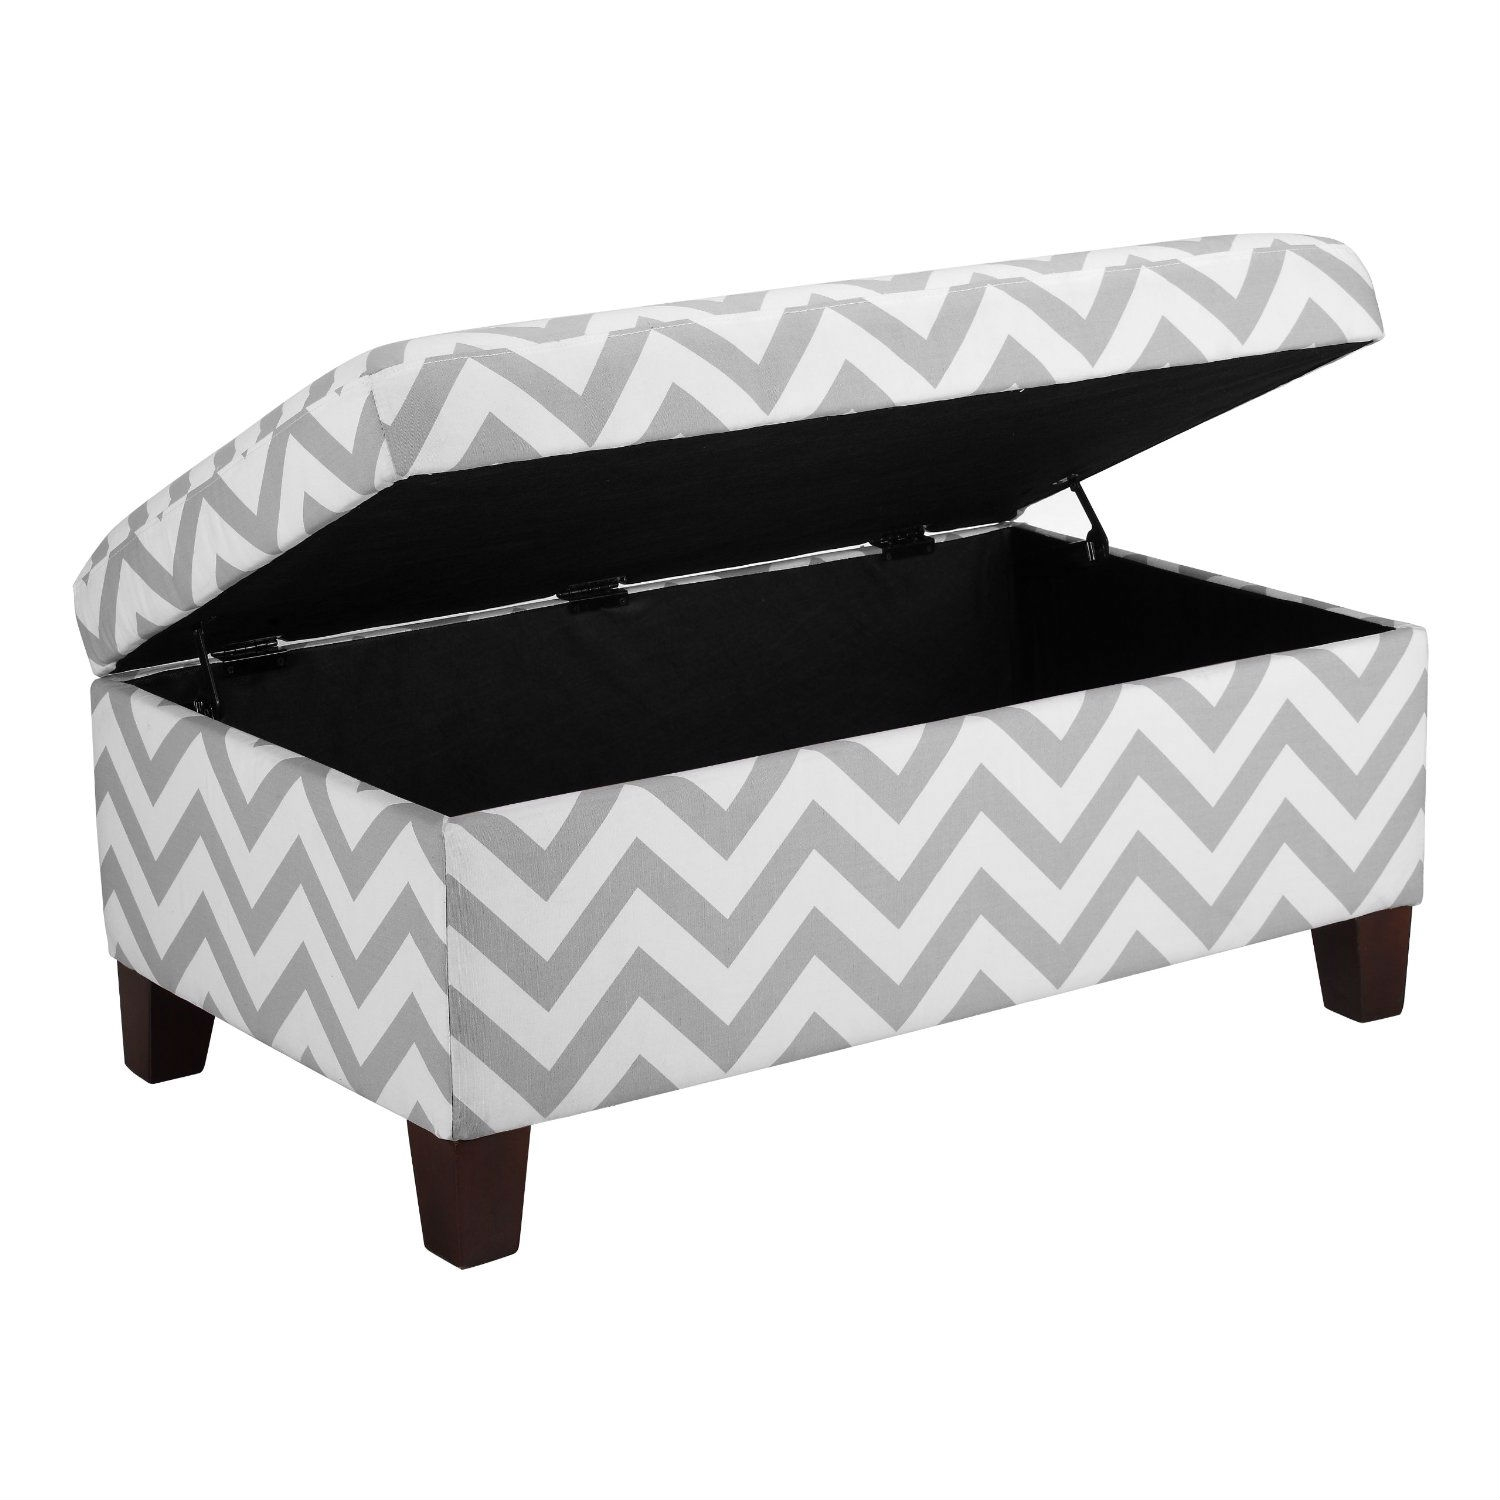 Admirable Grey White Chevron Stripe Padded Storage Ottoman Bench Caraccident5 Cool Chair Designs And Ideas Caraccident5Info